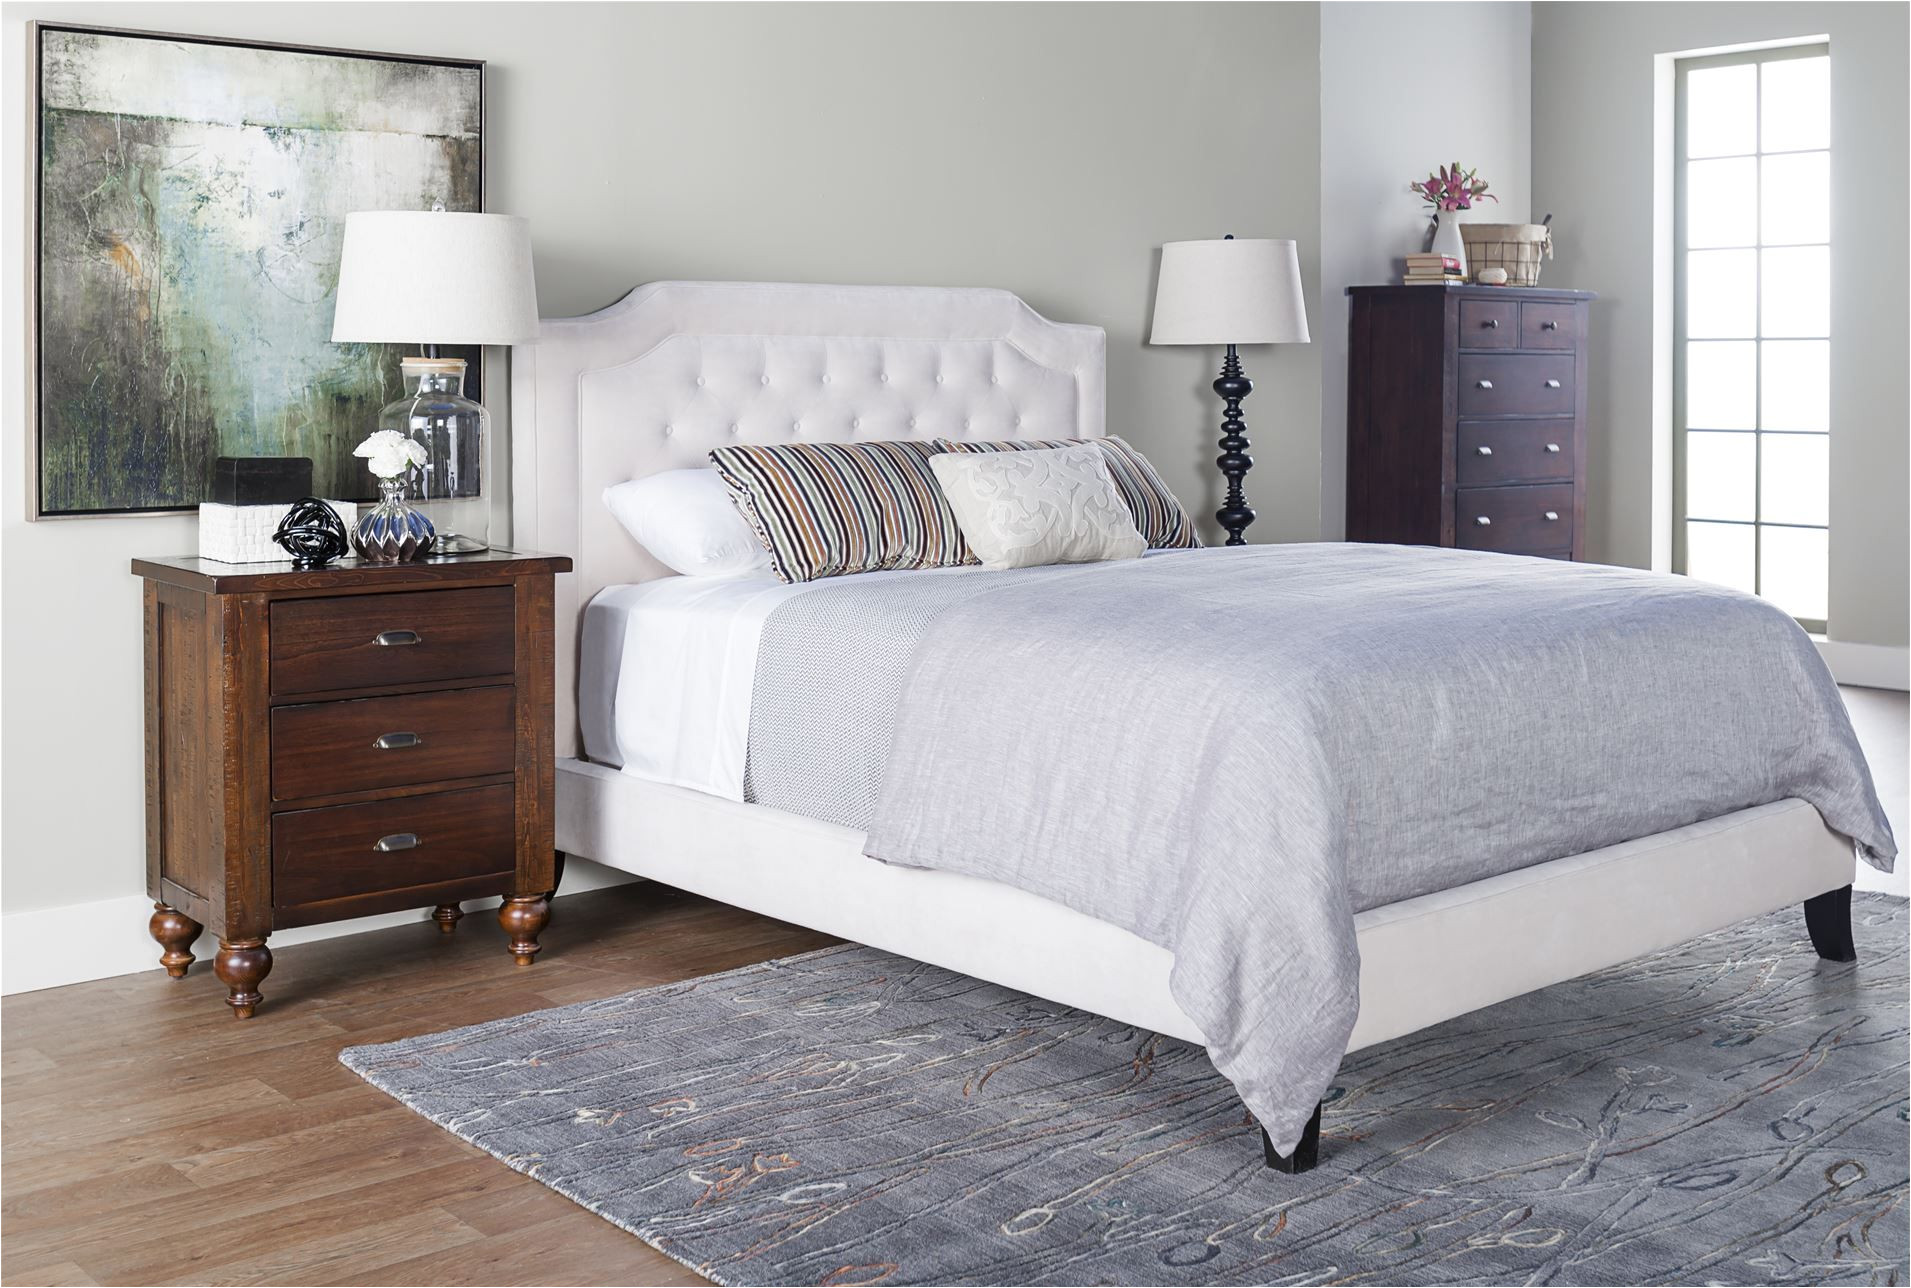 bardot fabric eastern king panel bed want this bed in this color for master bedroom against light gray wall right